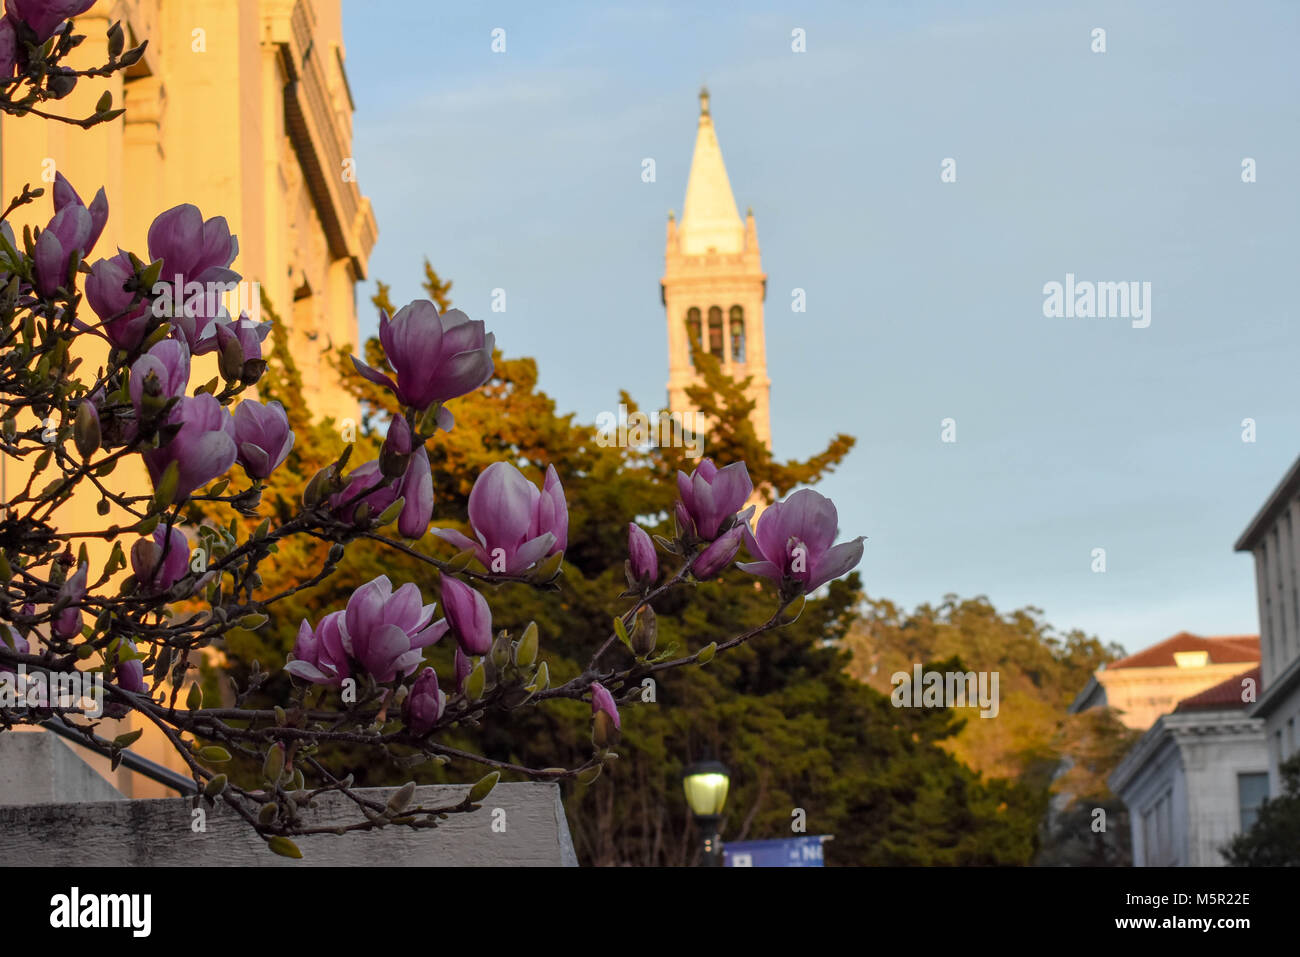 UC Berkeley's stunning campus contains natural and architectural beauty in equal measure. - Stock Image